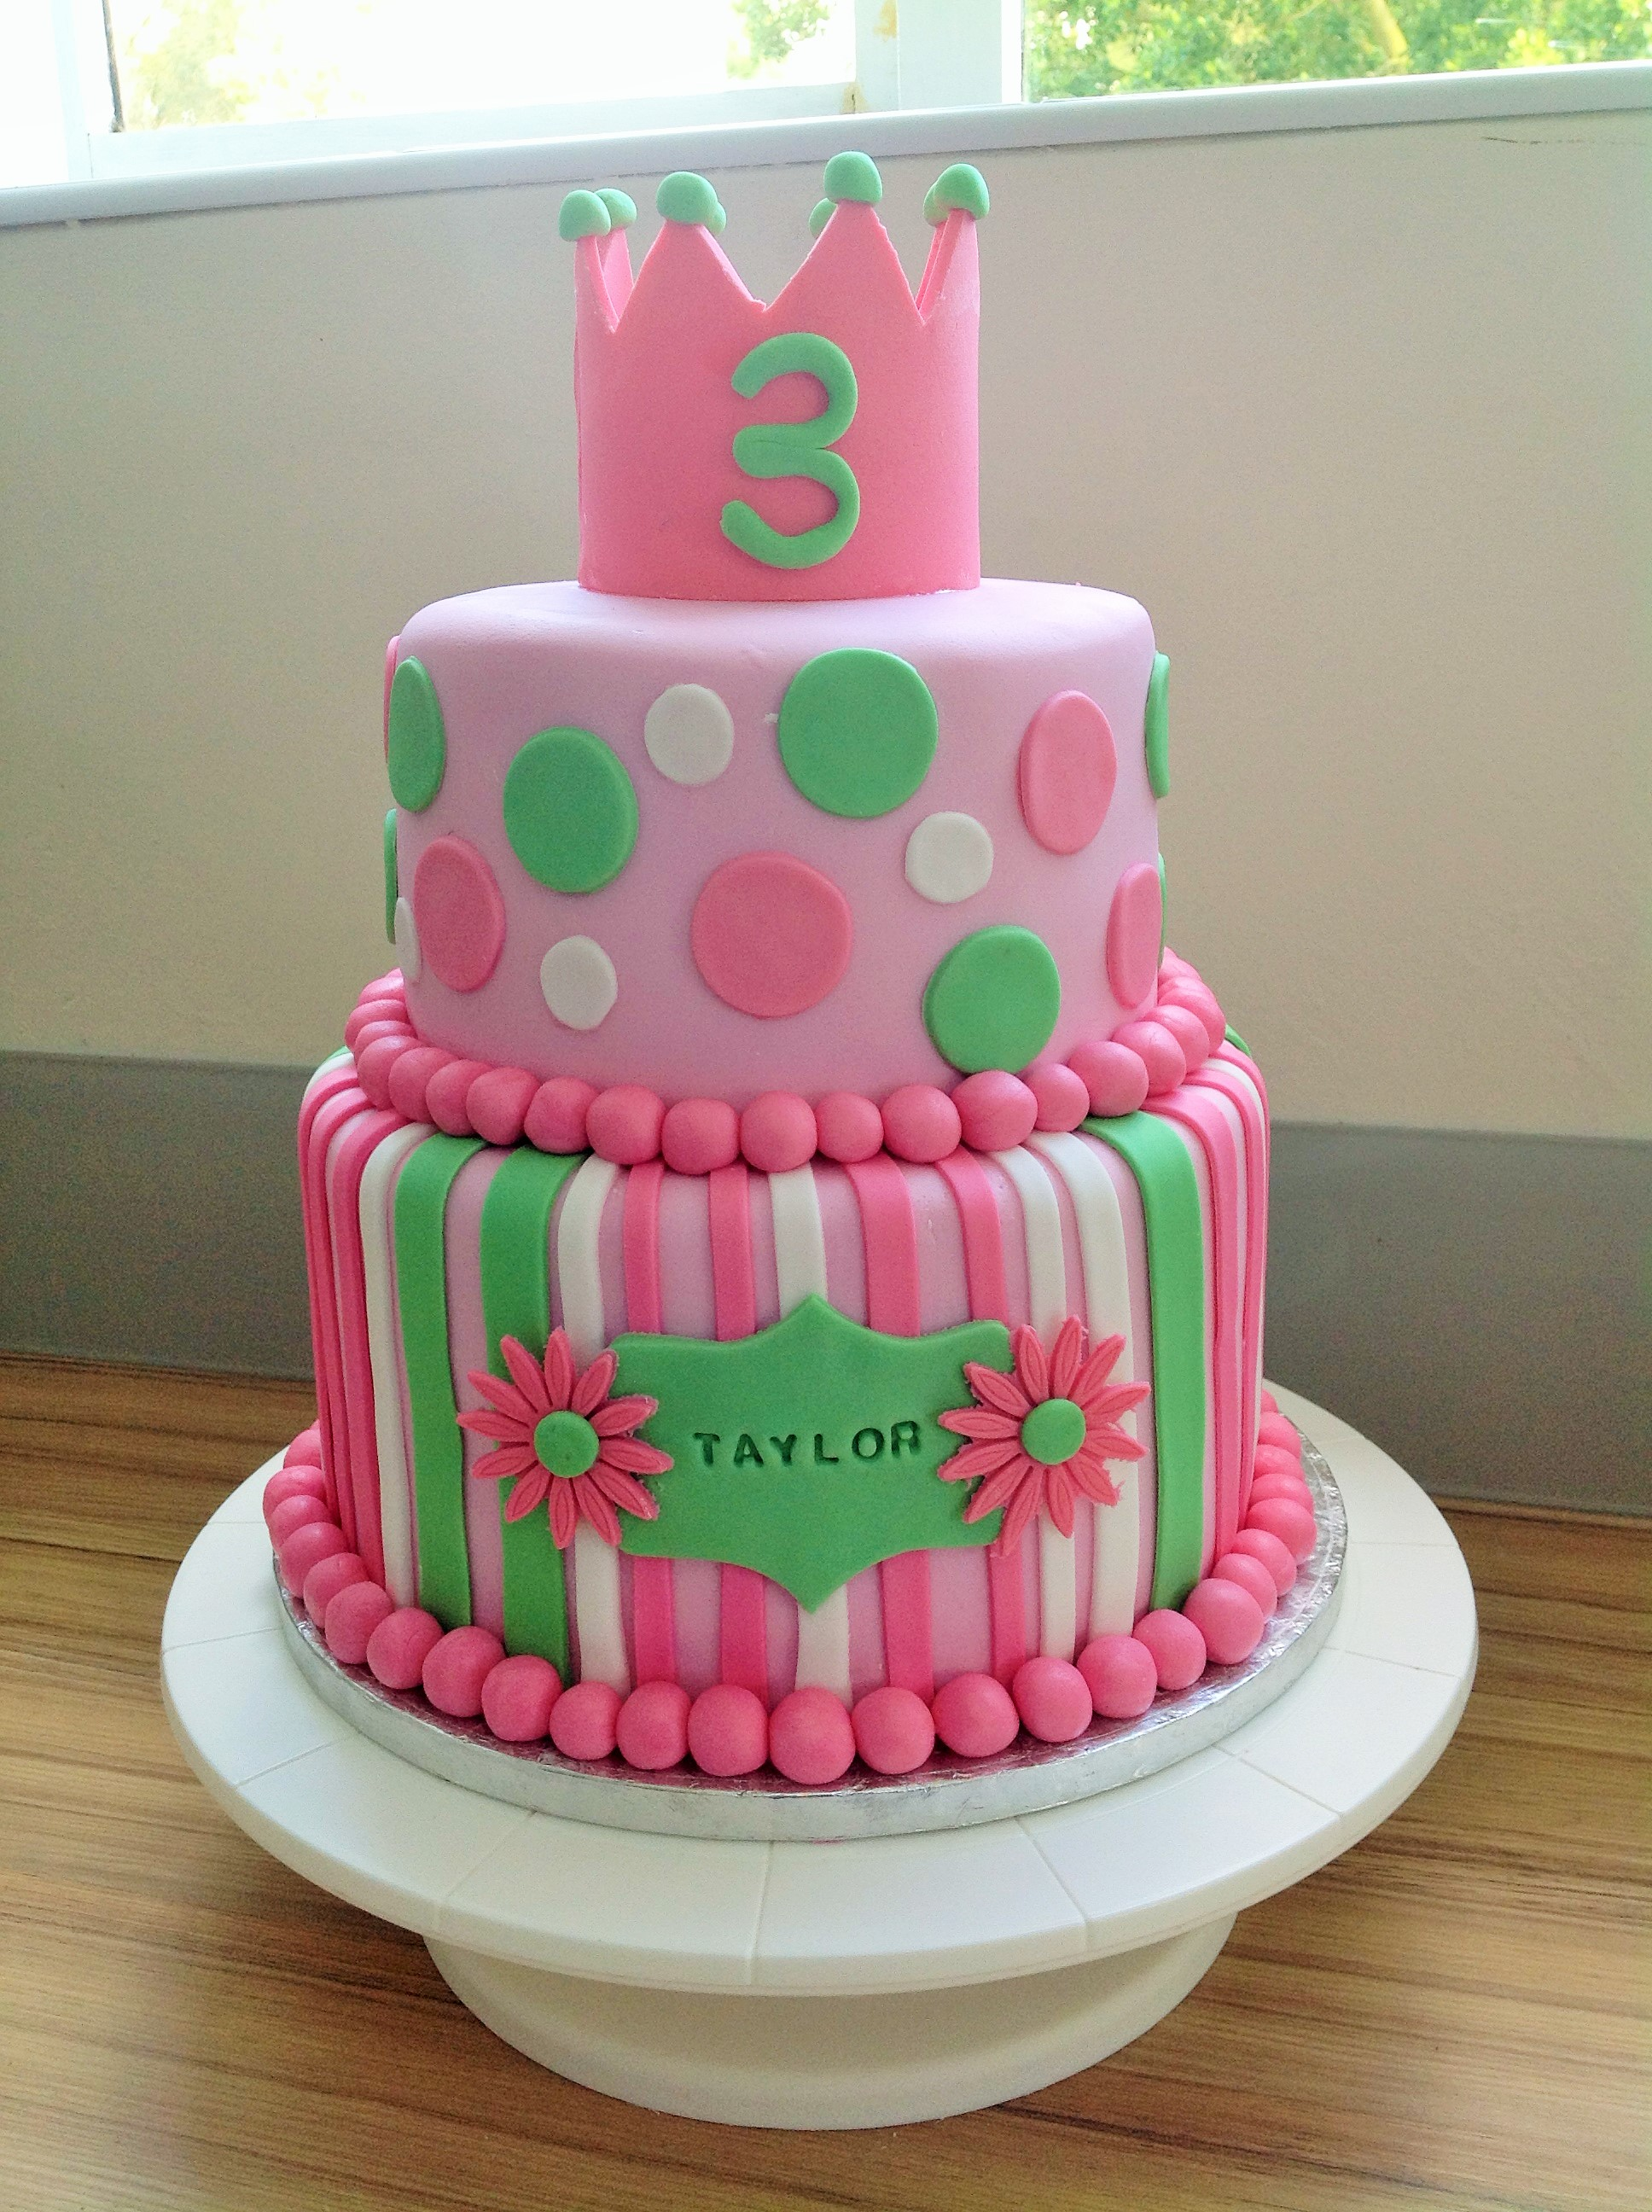 Princess Crown Cake With Stipes And Dots